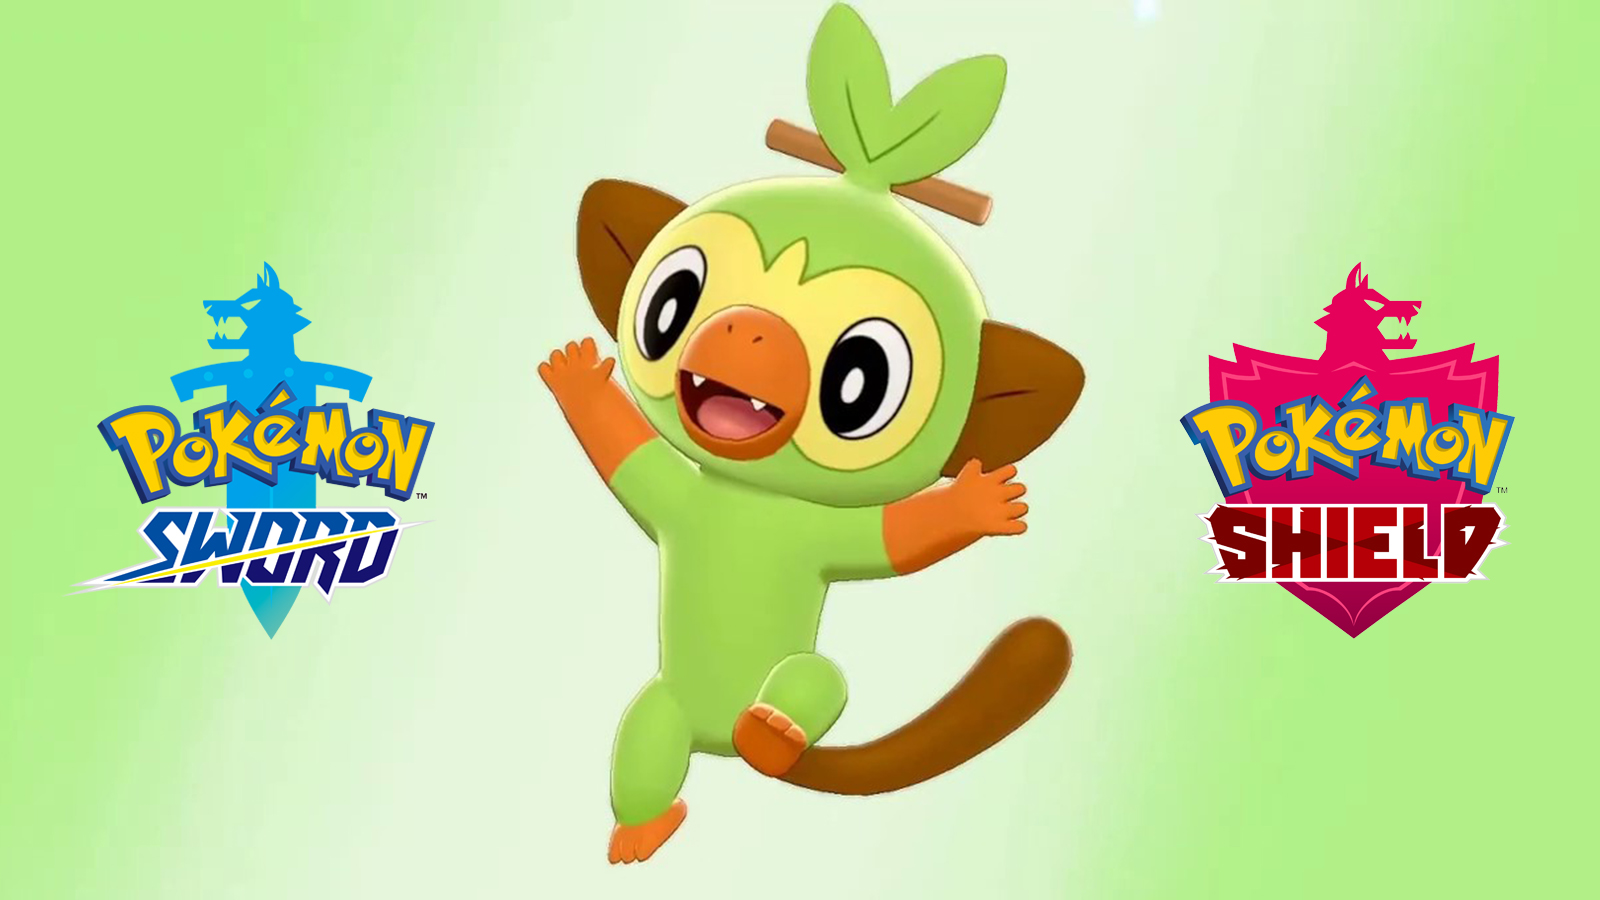 Pokemon Grookey Sword Shield